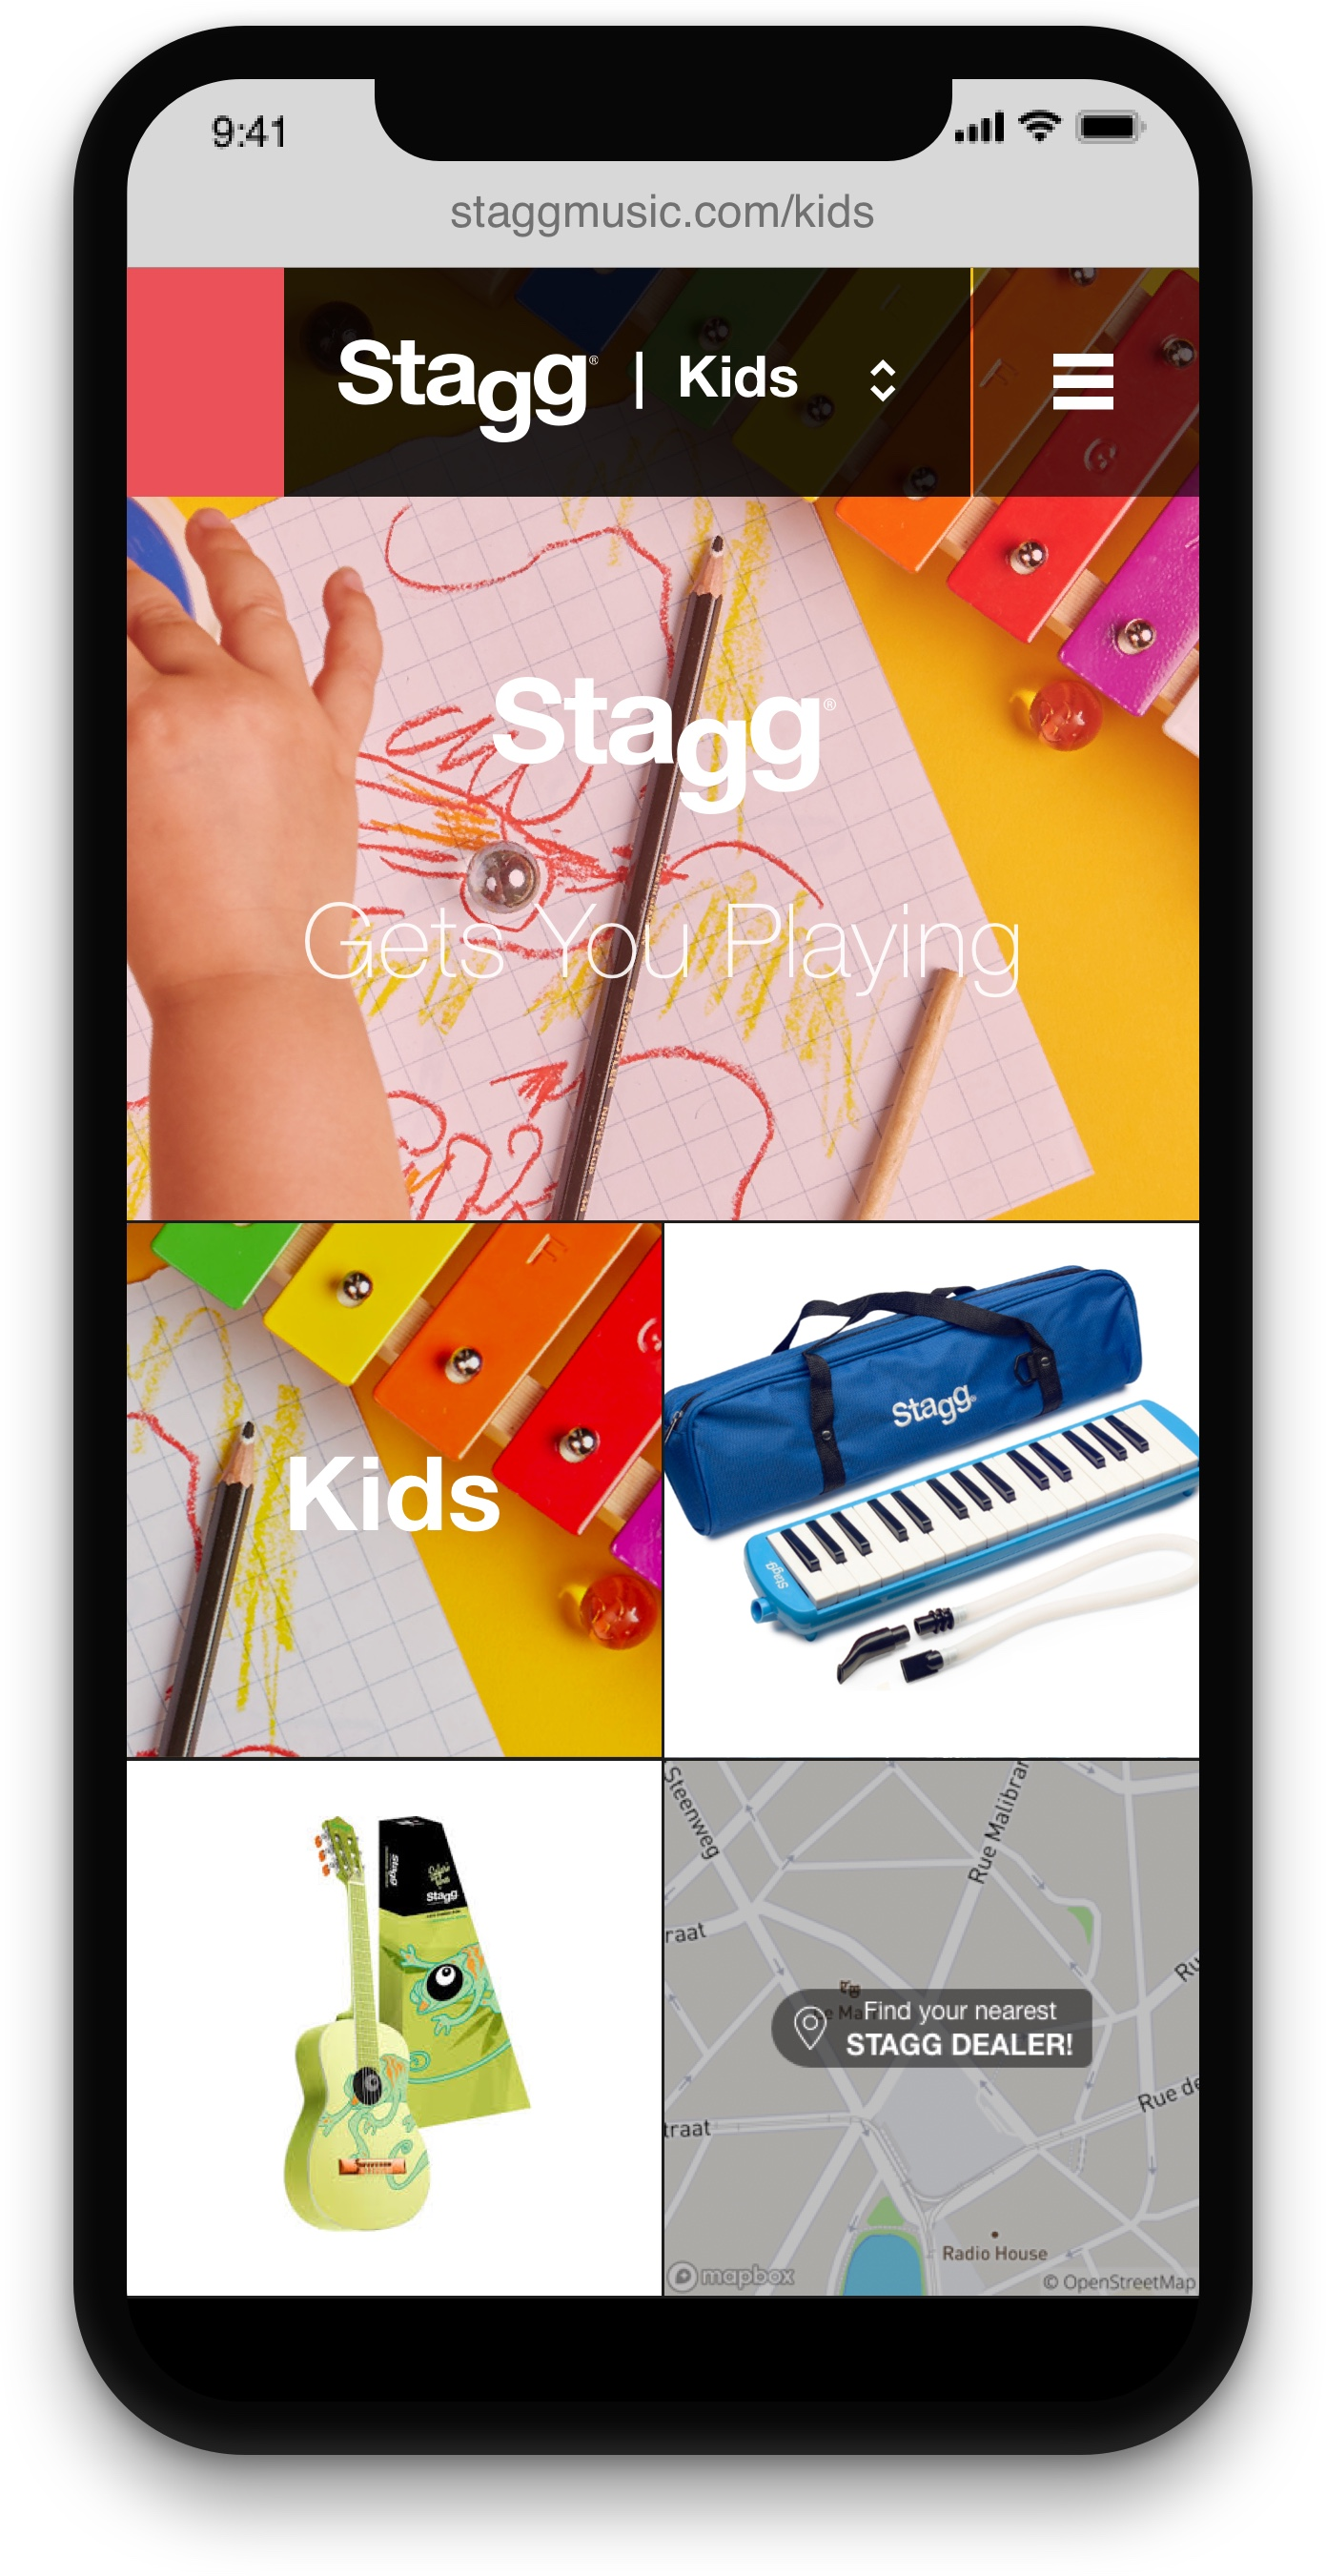 Stagg homepage on iphone